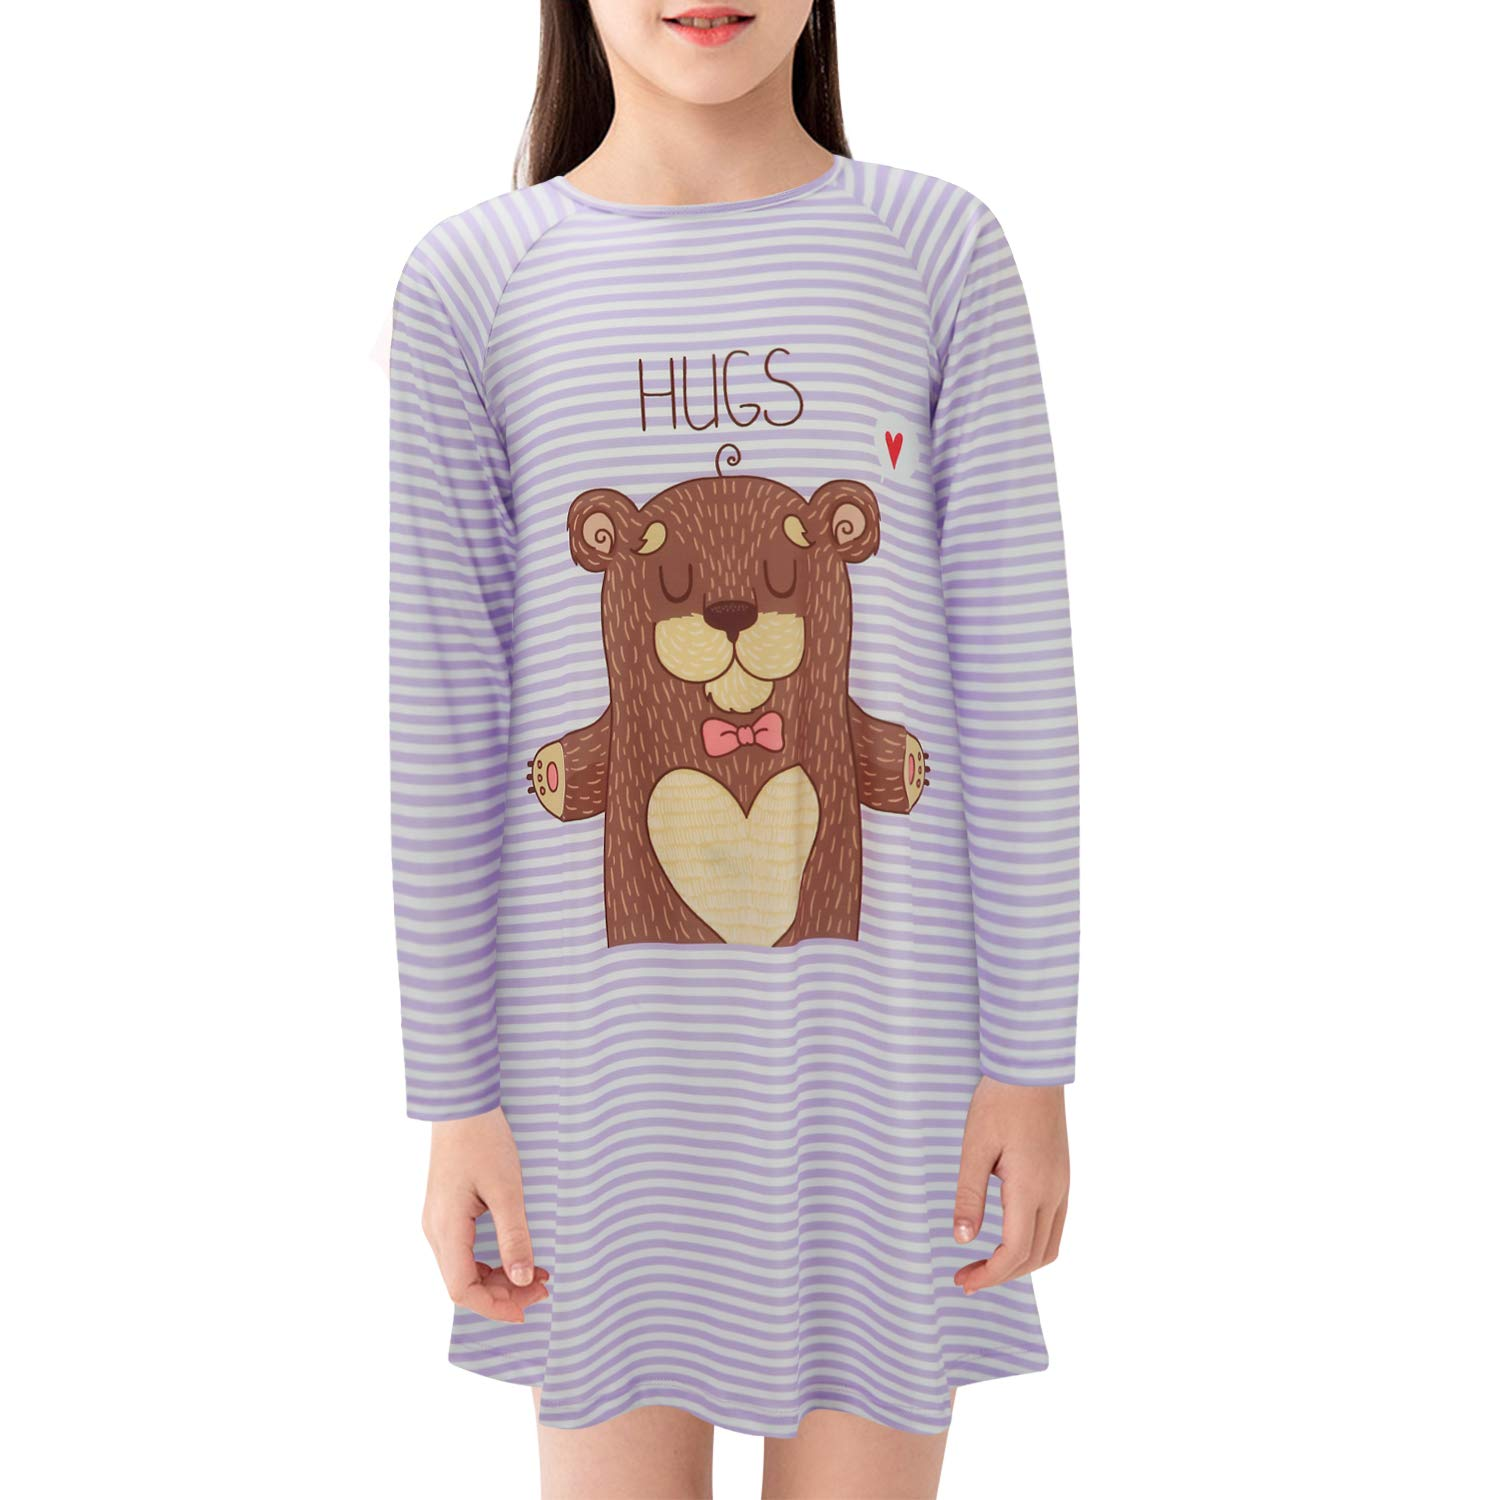 Image of Cute Striped Hugs Bear Nightgown for Girls